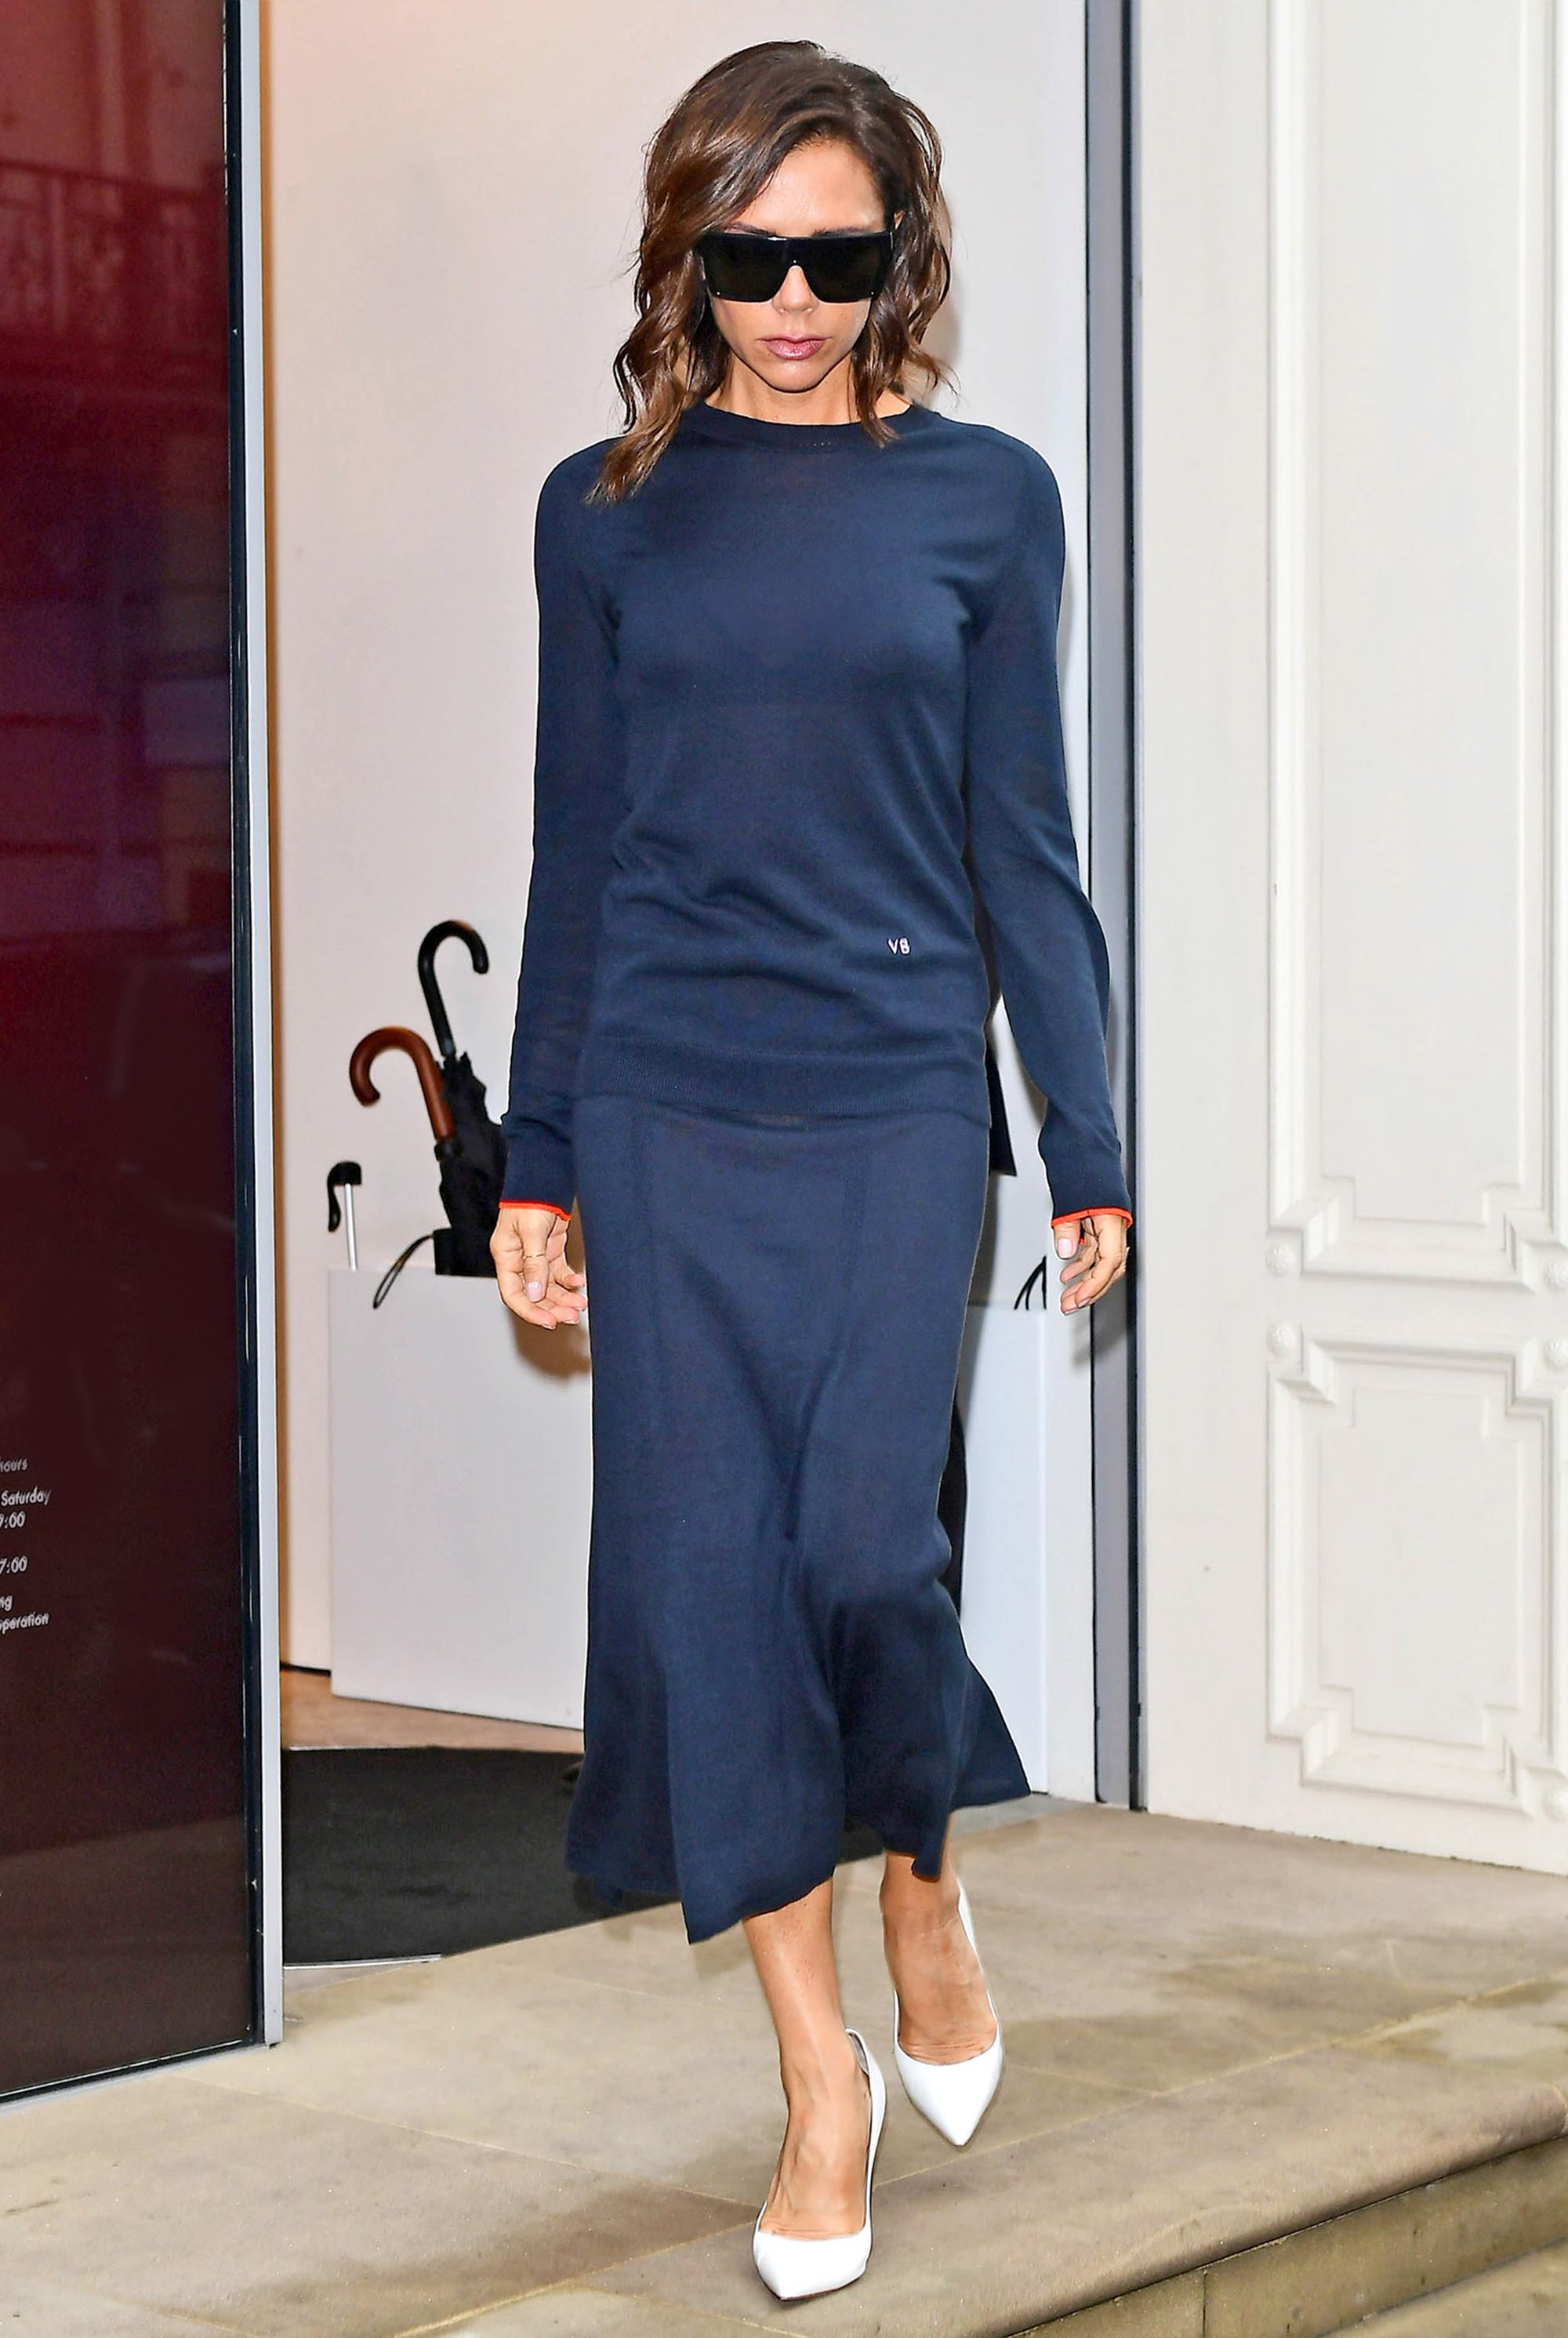 Victoria Beckham Kicks Off London Fashion Week with in Monochromatic Navy from…